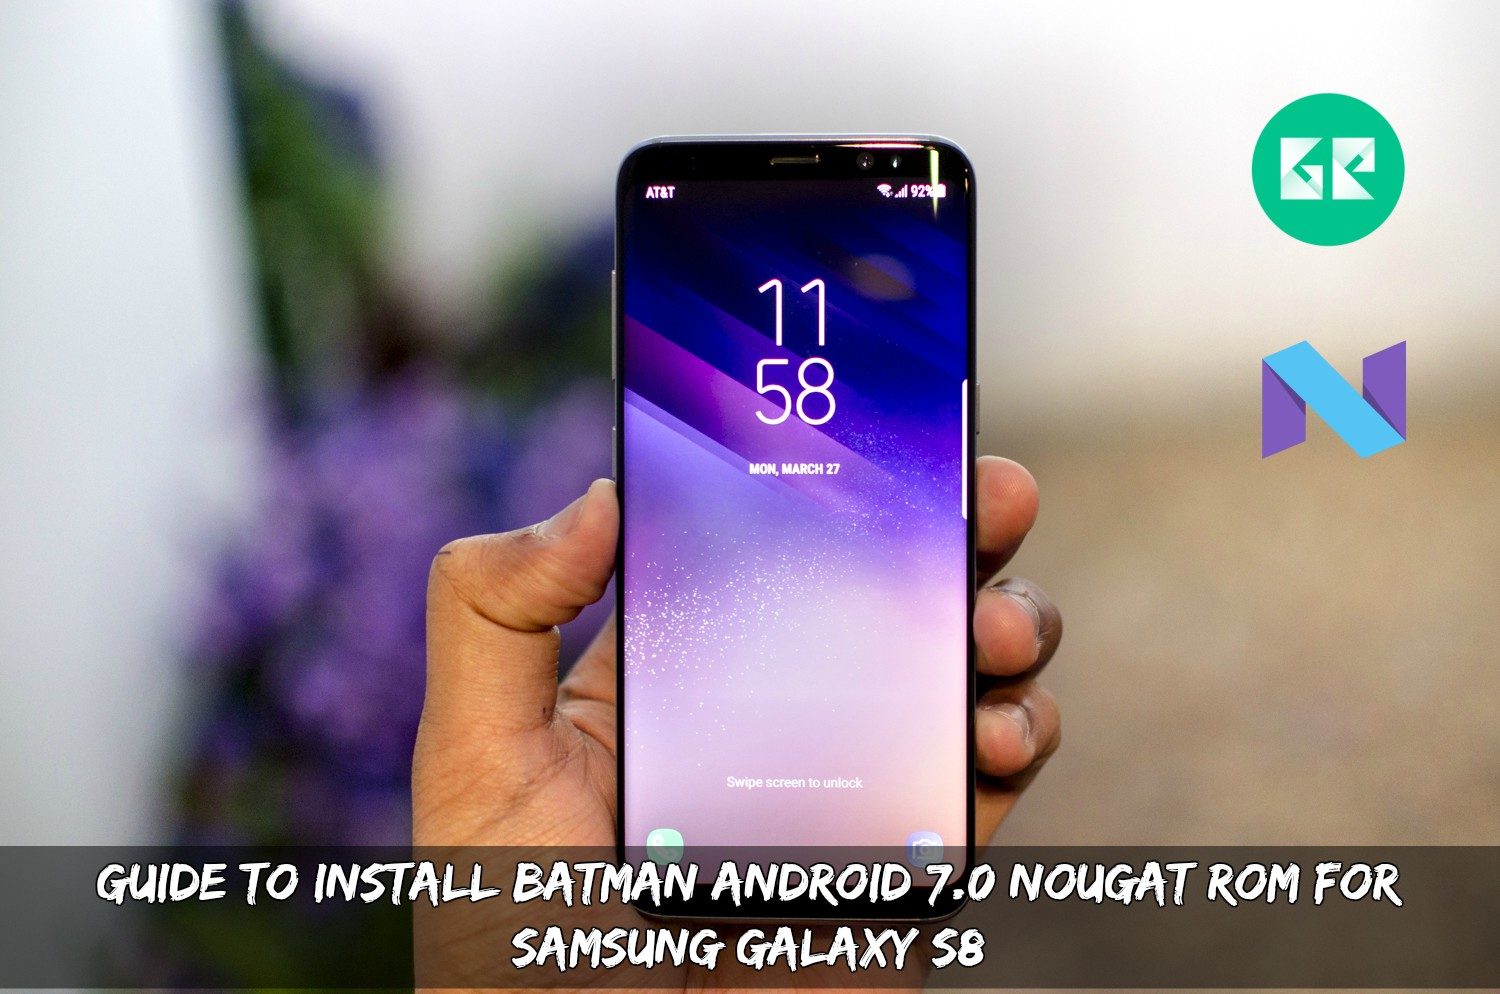 Guide To Install Batman Android 7.0 Nougat ROM For Samsung Galaxy S8